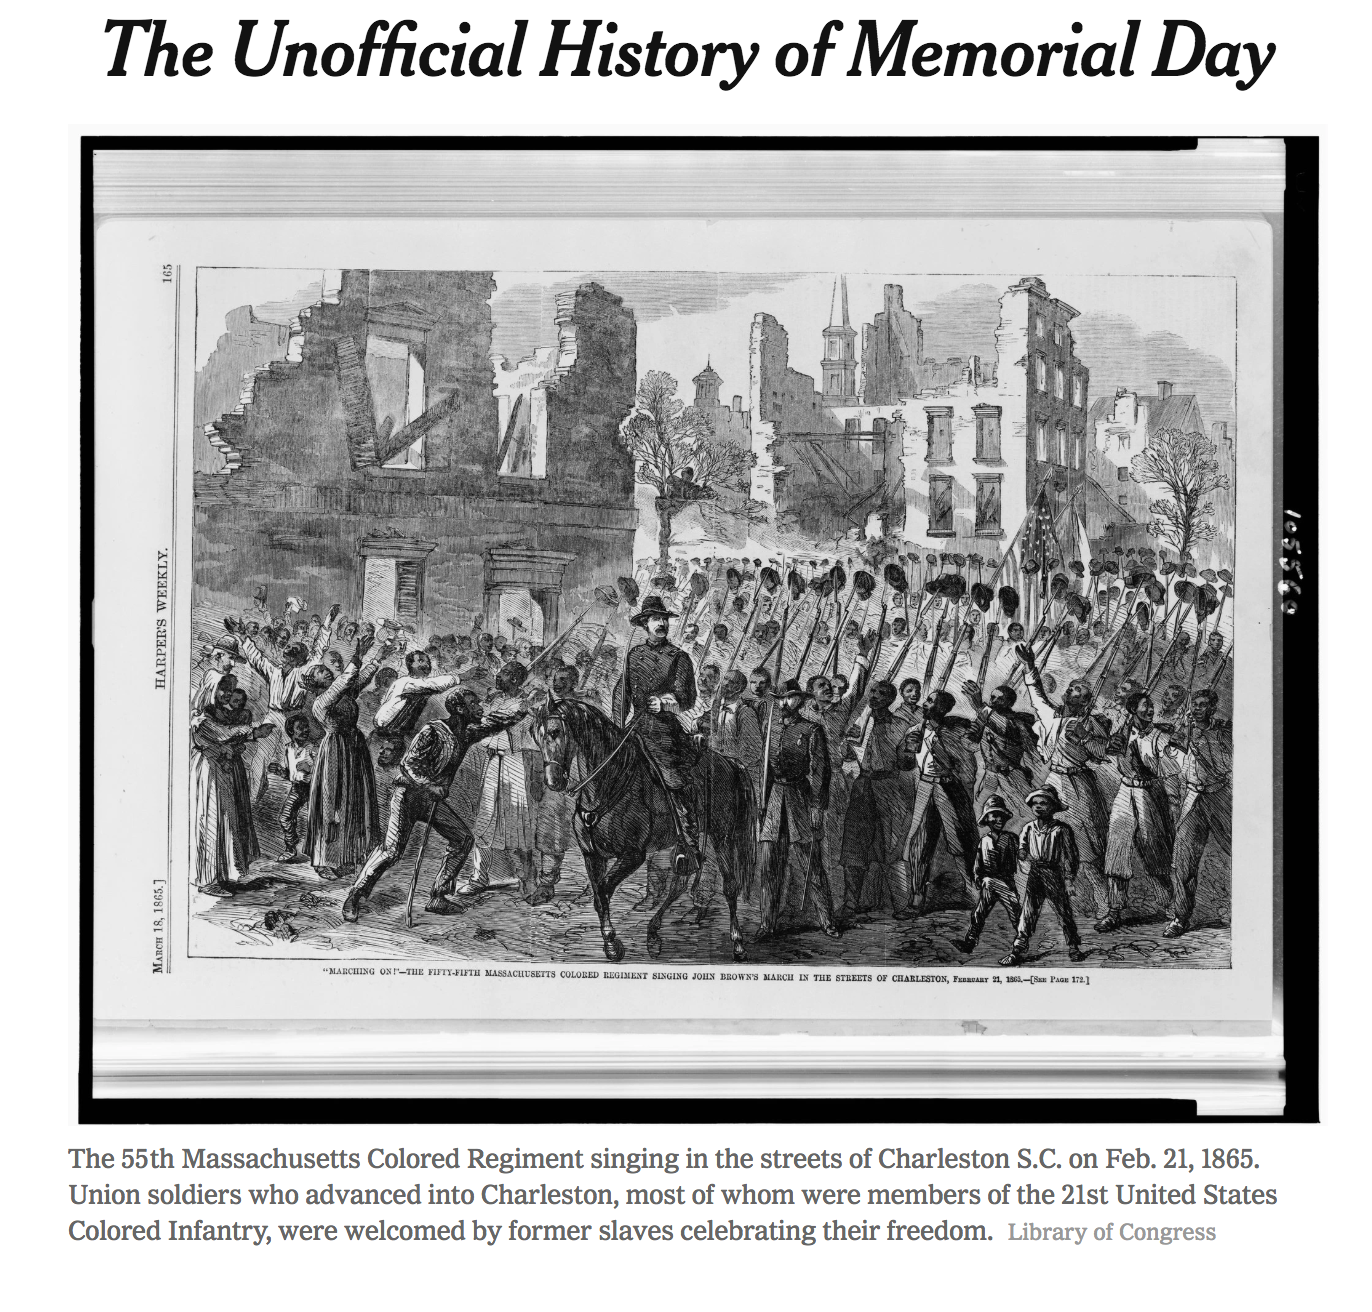 The Unofficial History of Memorial Day via The New York Times